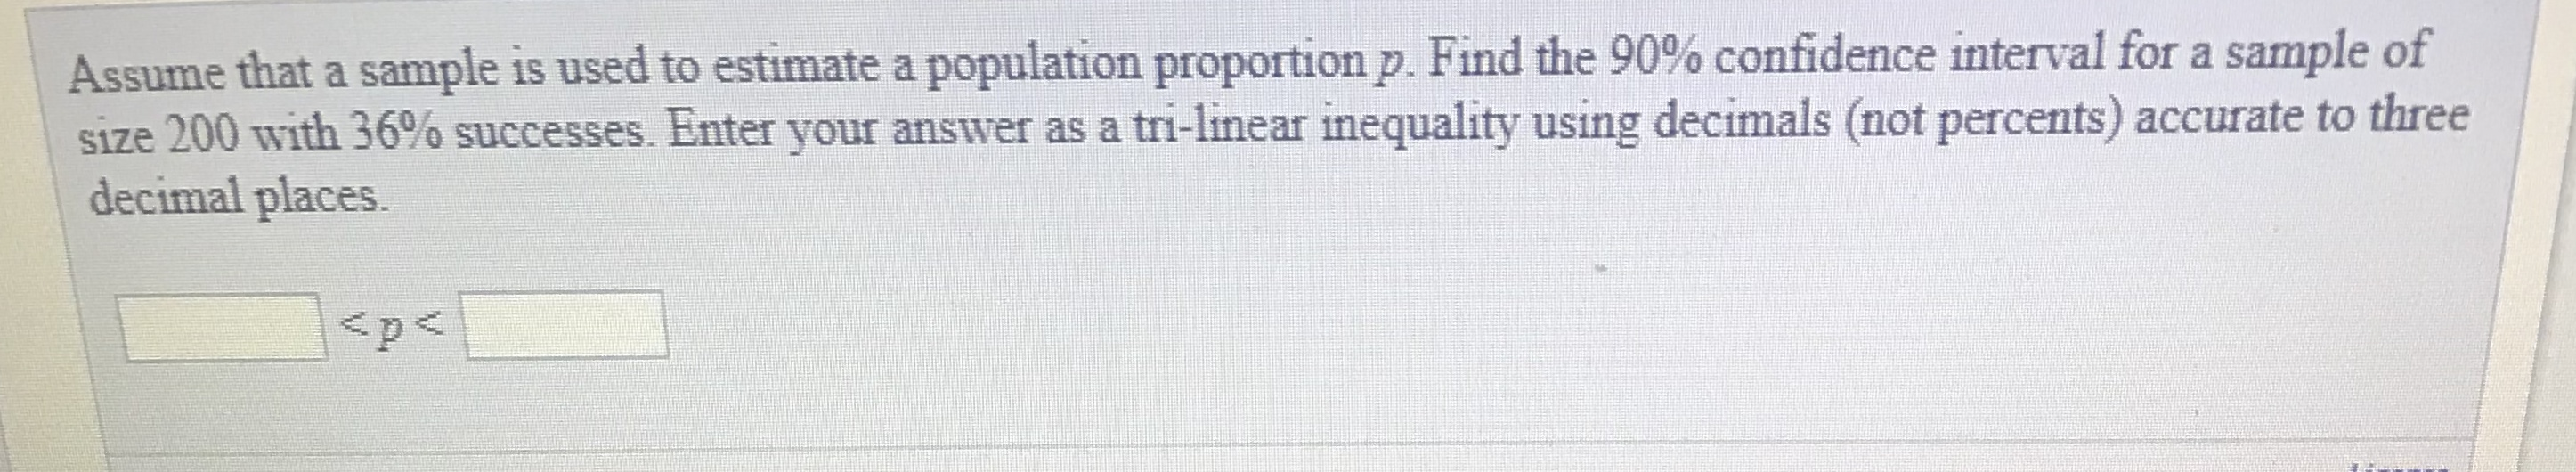 Assume that a sample is used to estimate a population proportion p. Find the 90% confidence interval for a sample of size 200 with 36% successes. Enter your answer as a tri-linear inequality using decimals (not percents) accurate to three decimal places.